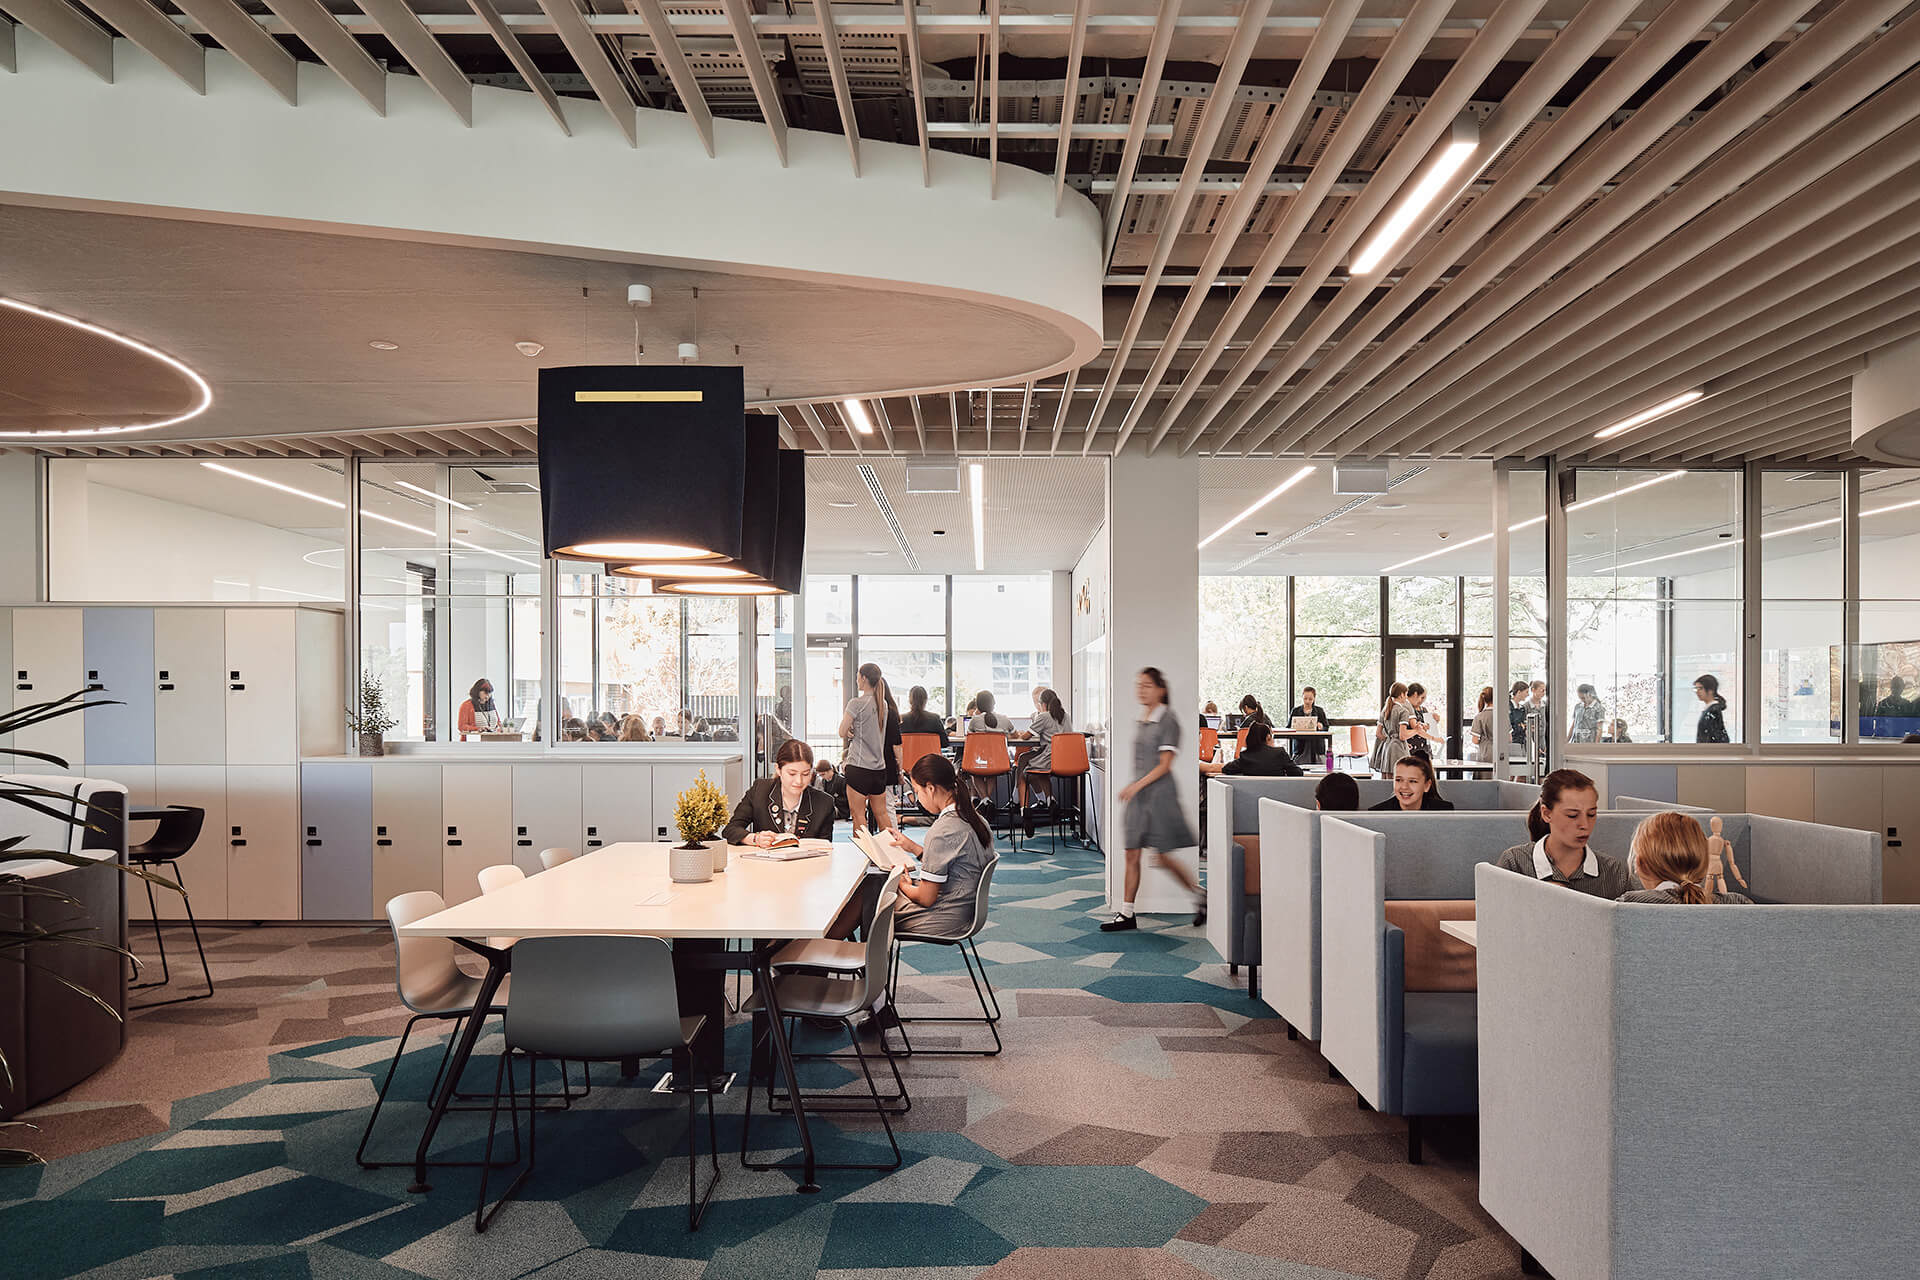 Flexible spaces for practice learning | MLC Nicholas Learning Centre by Mcildowie Partners | STIRworld